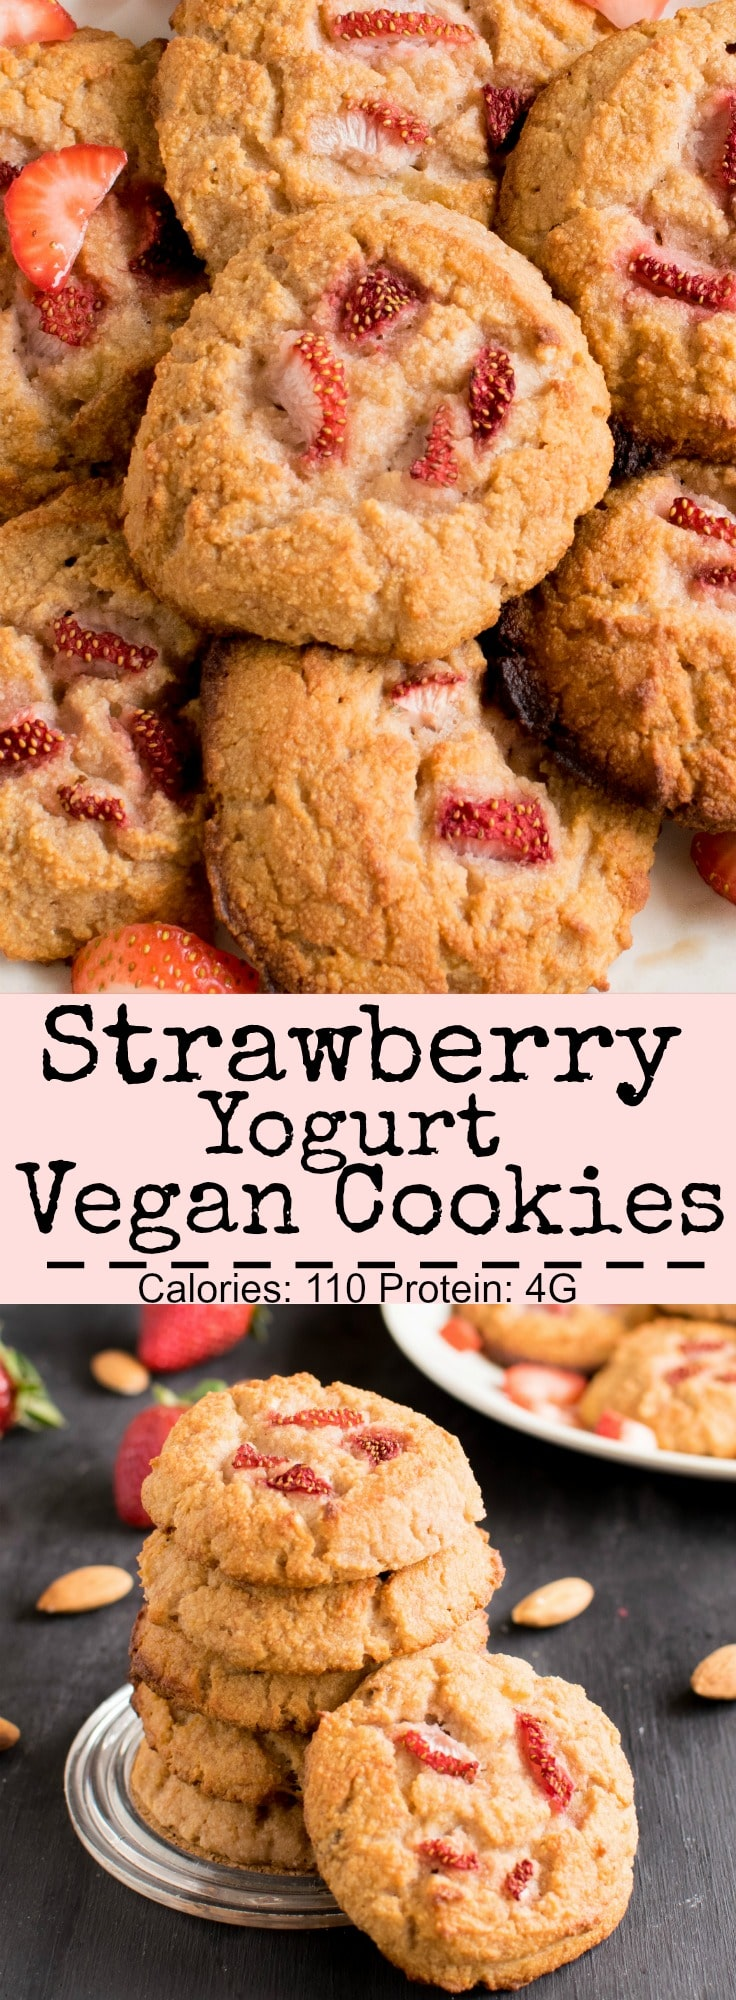 Multiple images of Strawberry Yogurt Vegan Cookies